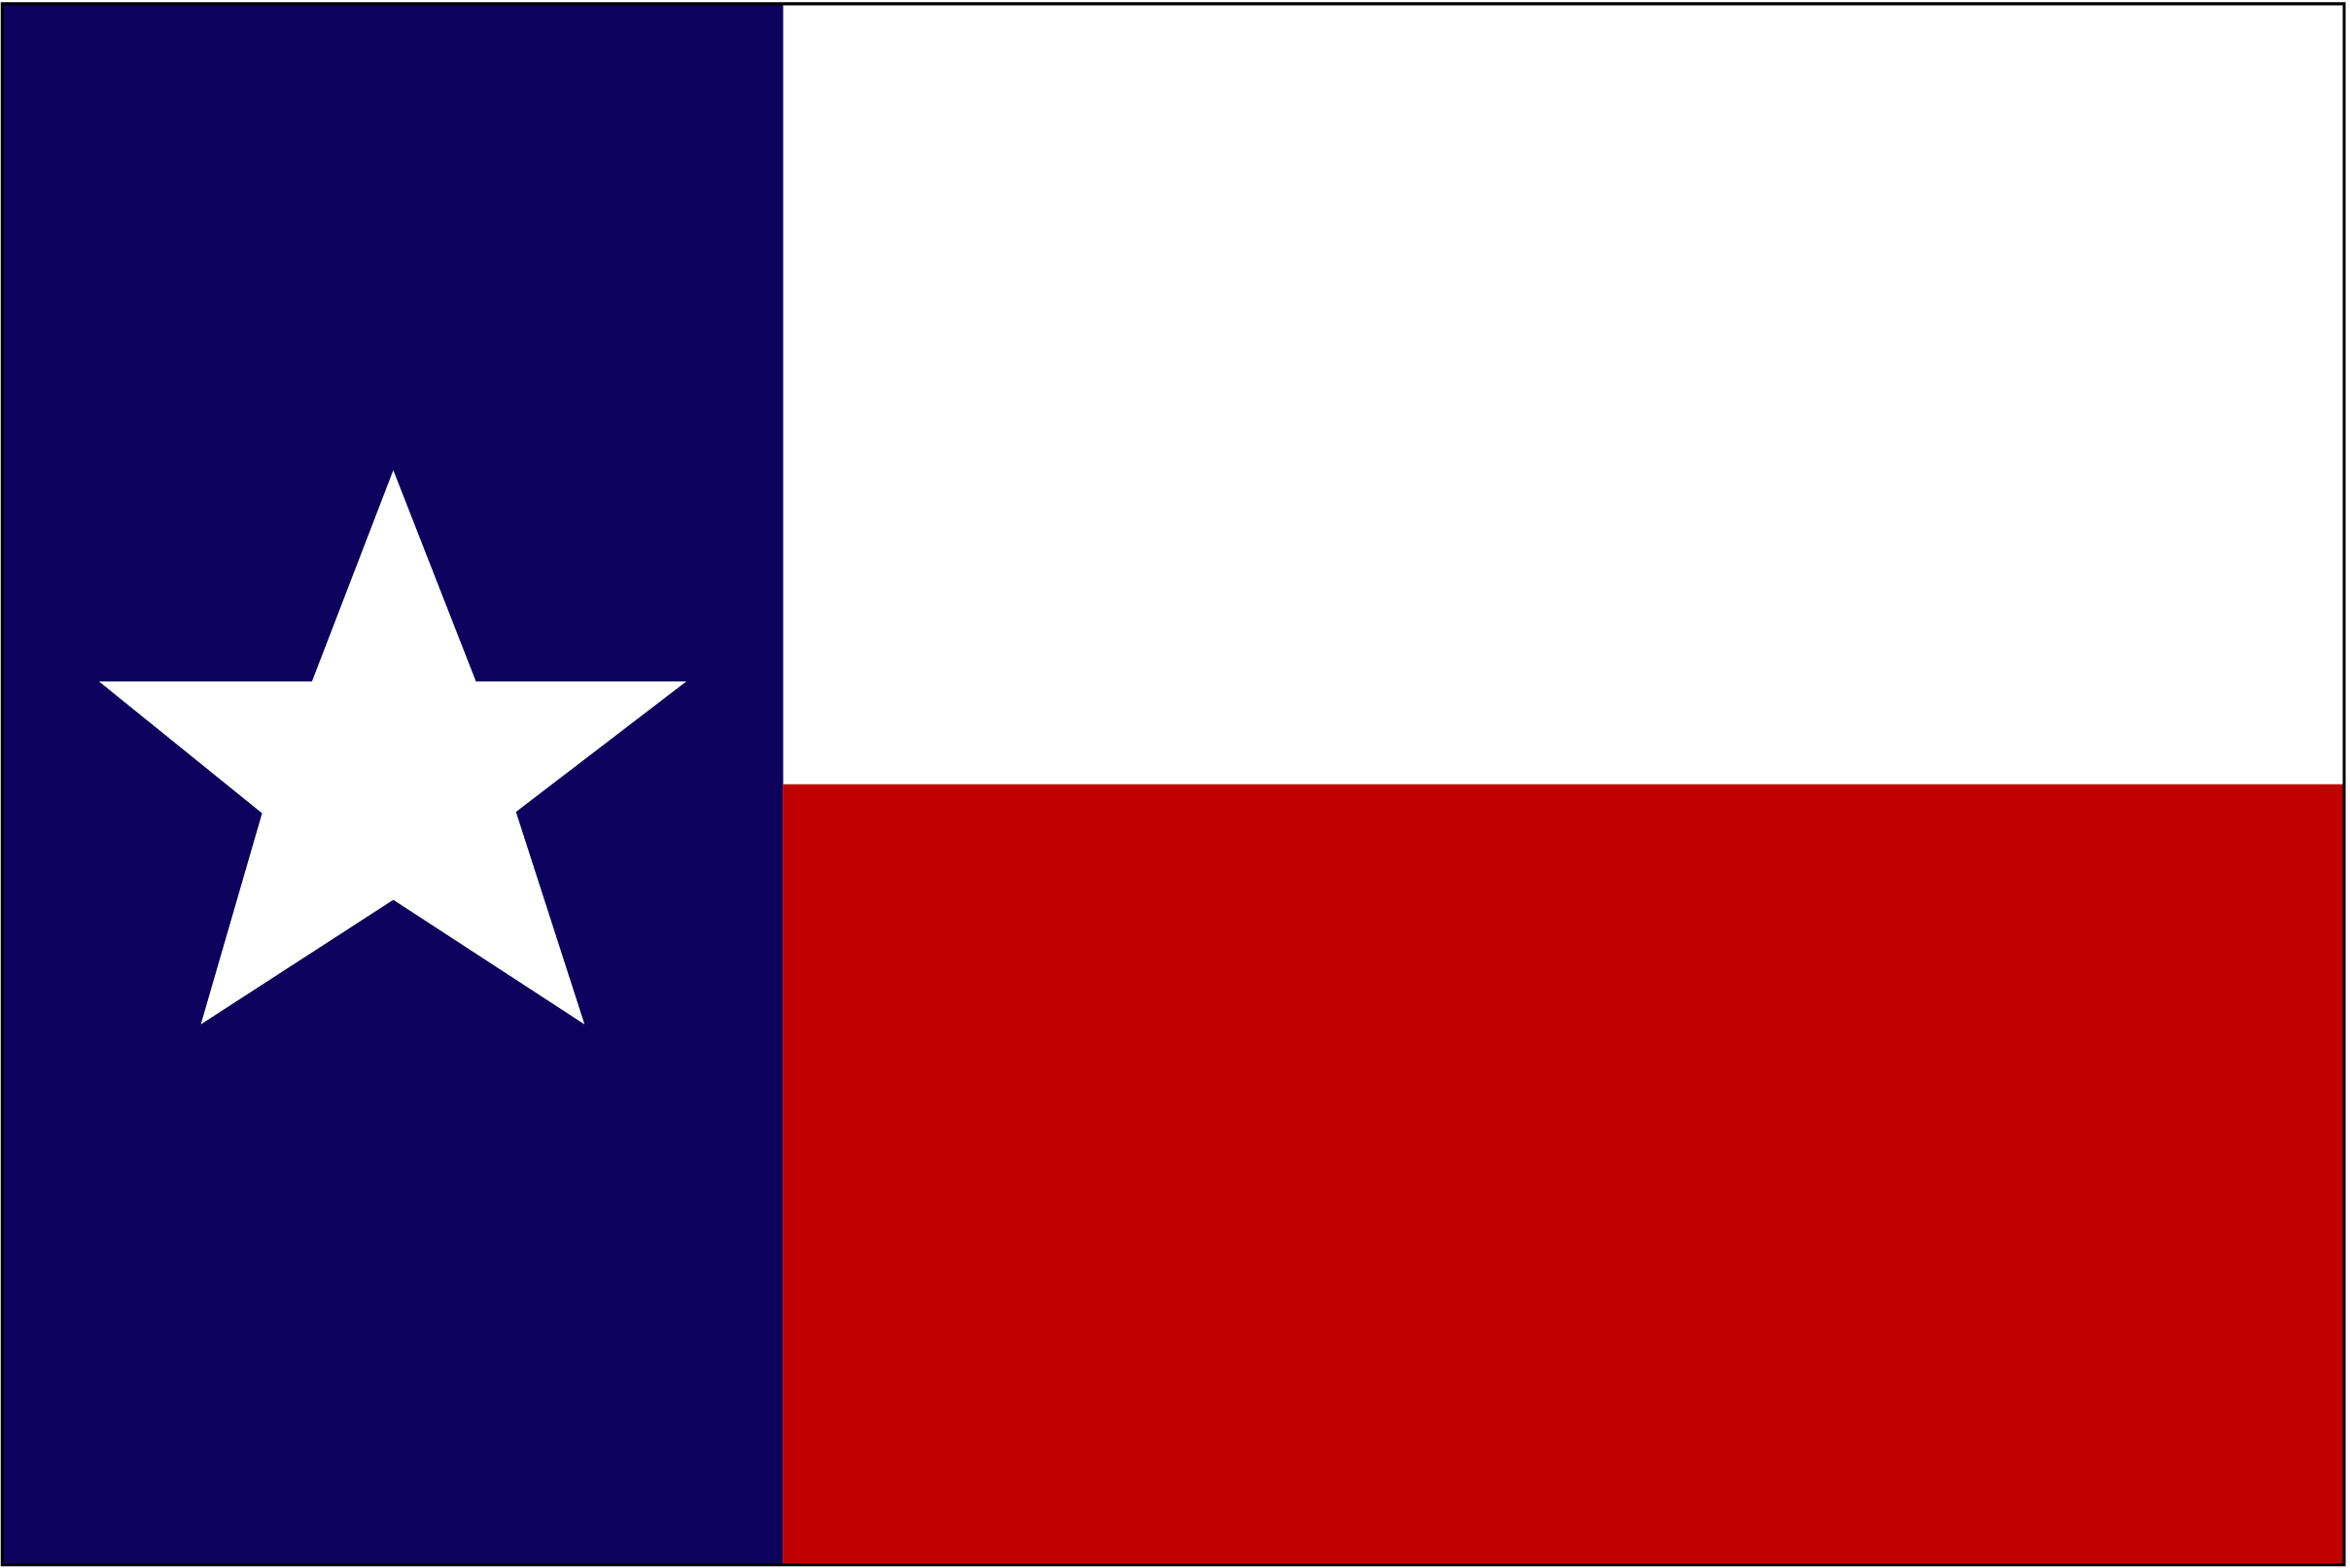 texas history clipart at getdrawings com free for personal use rh getdrawings com texas flag clip art free texas flag clip art free